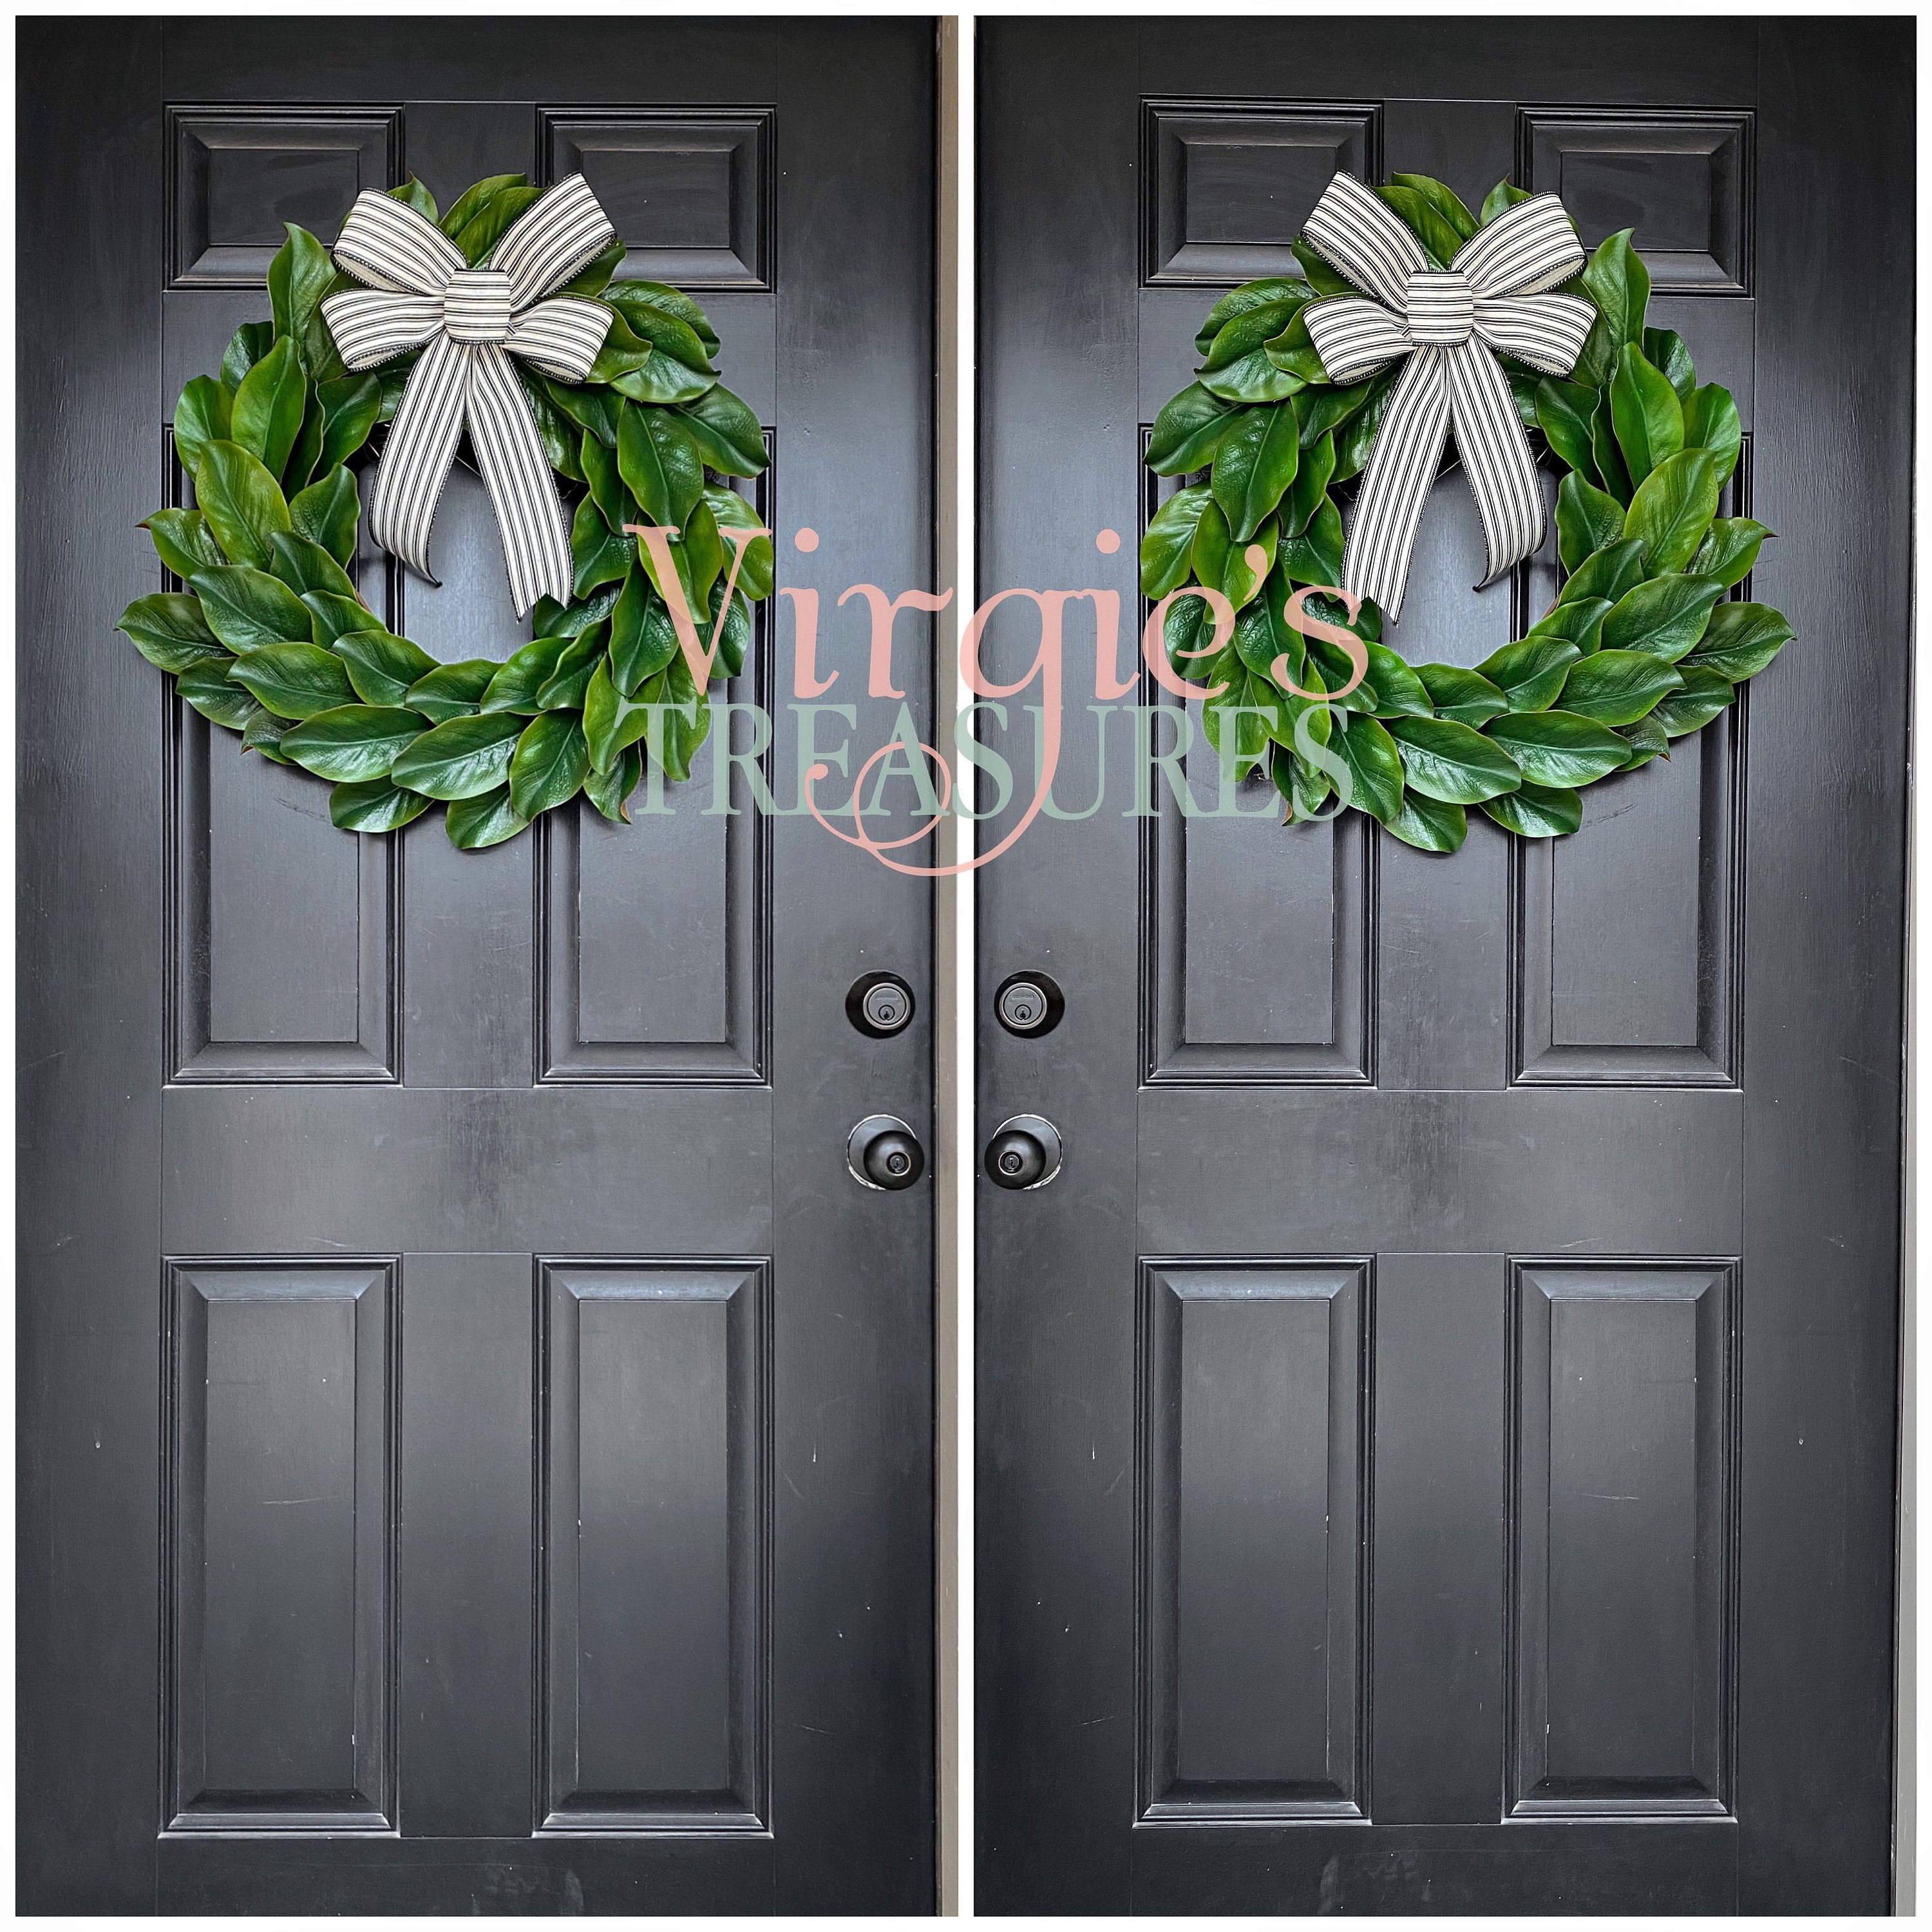 Magnolia Wreath, Magnolia Leaf Wreath, Magnolia Wreath, Farmhouse Wreath, Farmhouse Wall Decor, Wedding, Front Door Wreath, Double Doors #doubledoorwreaths